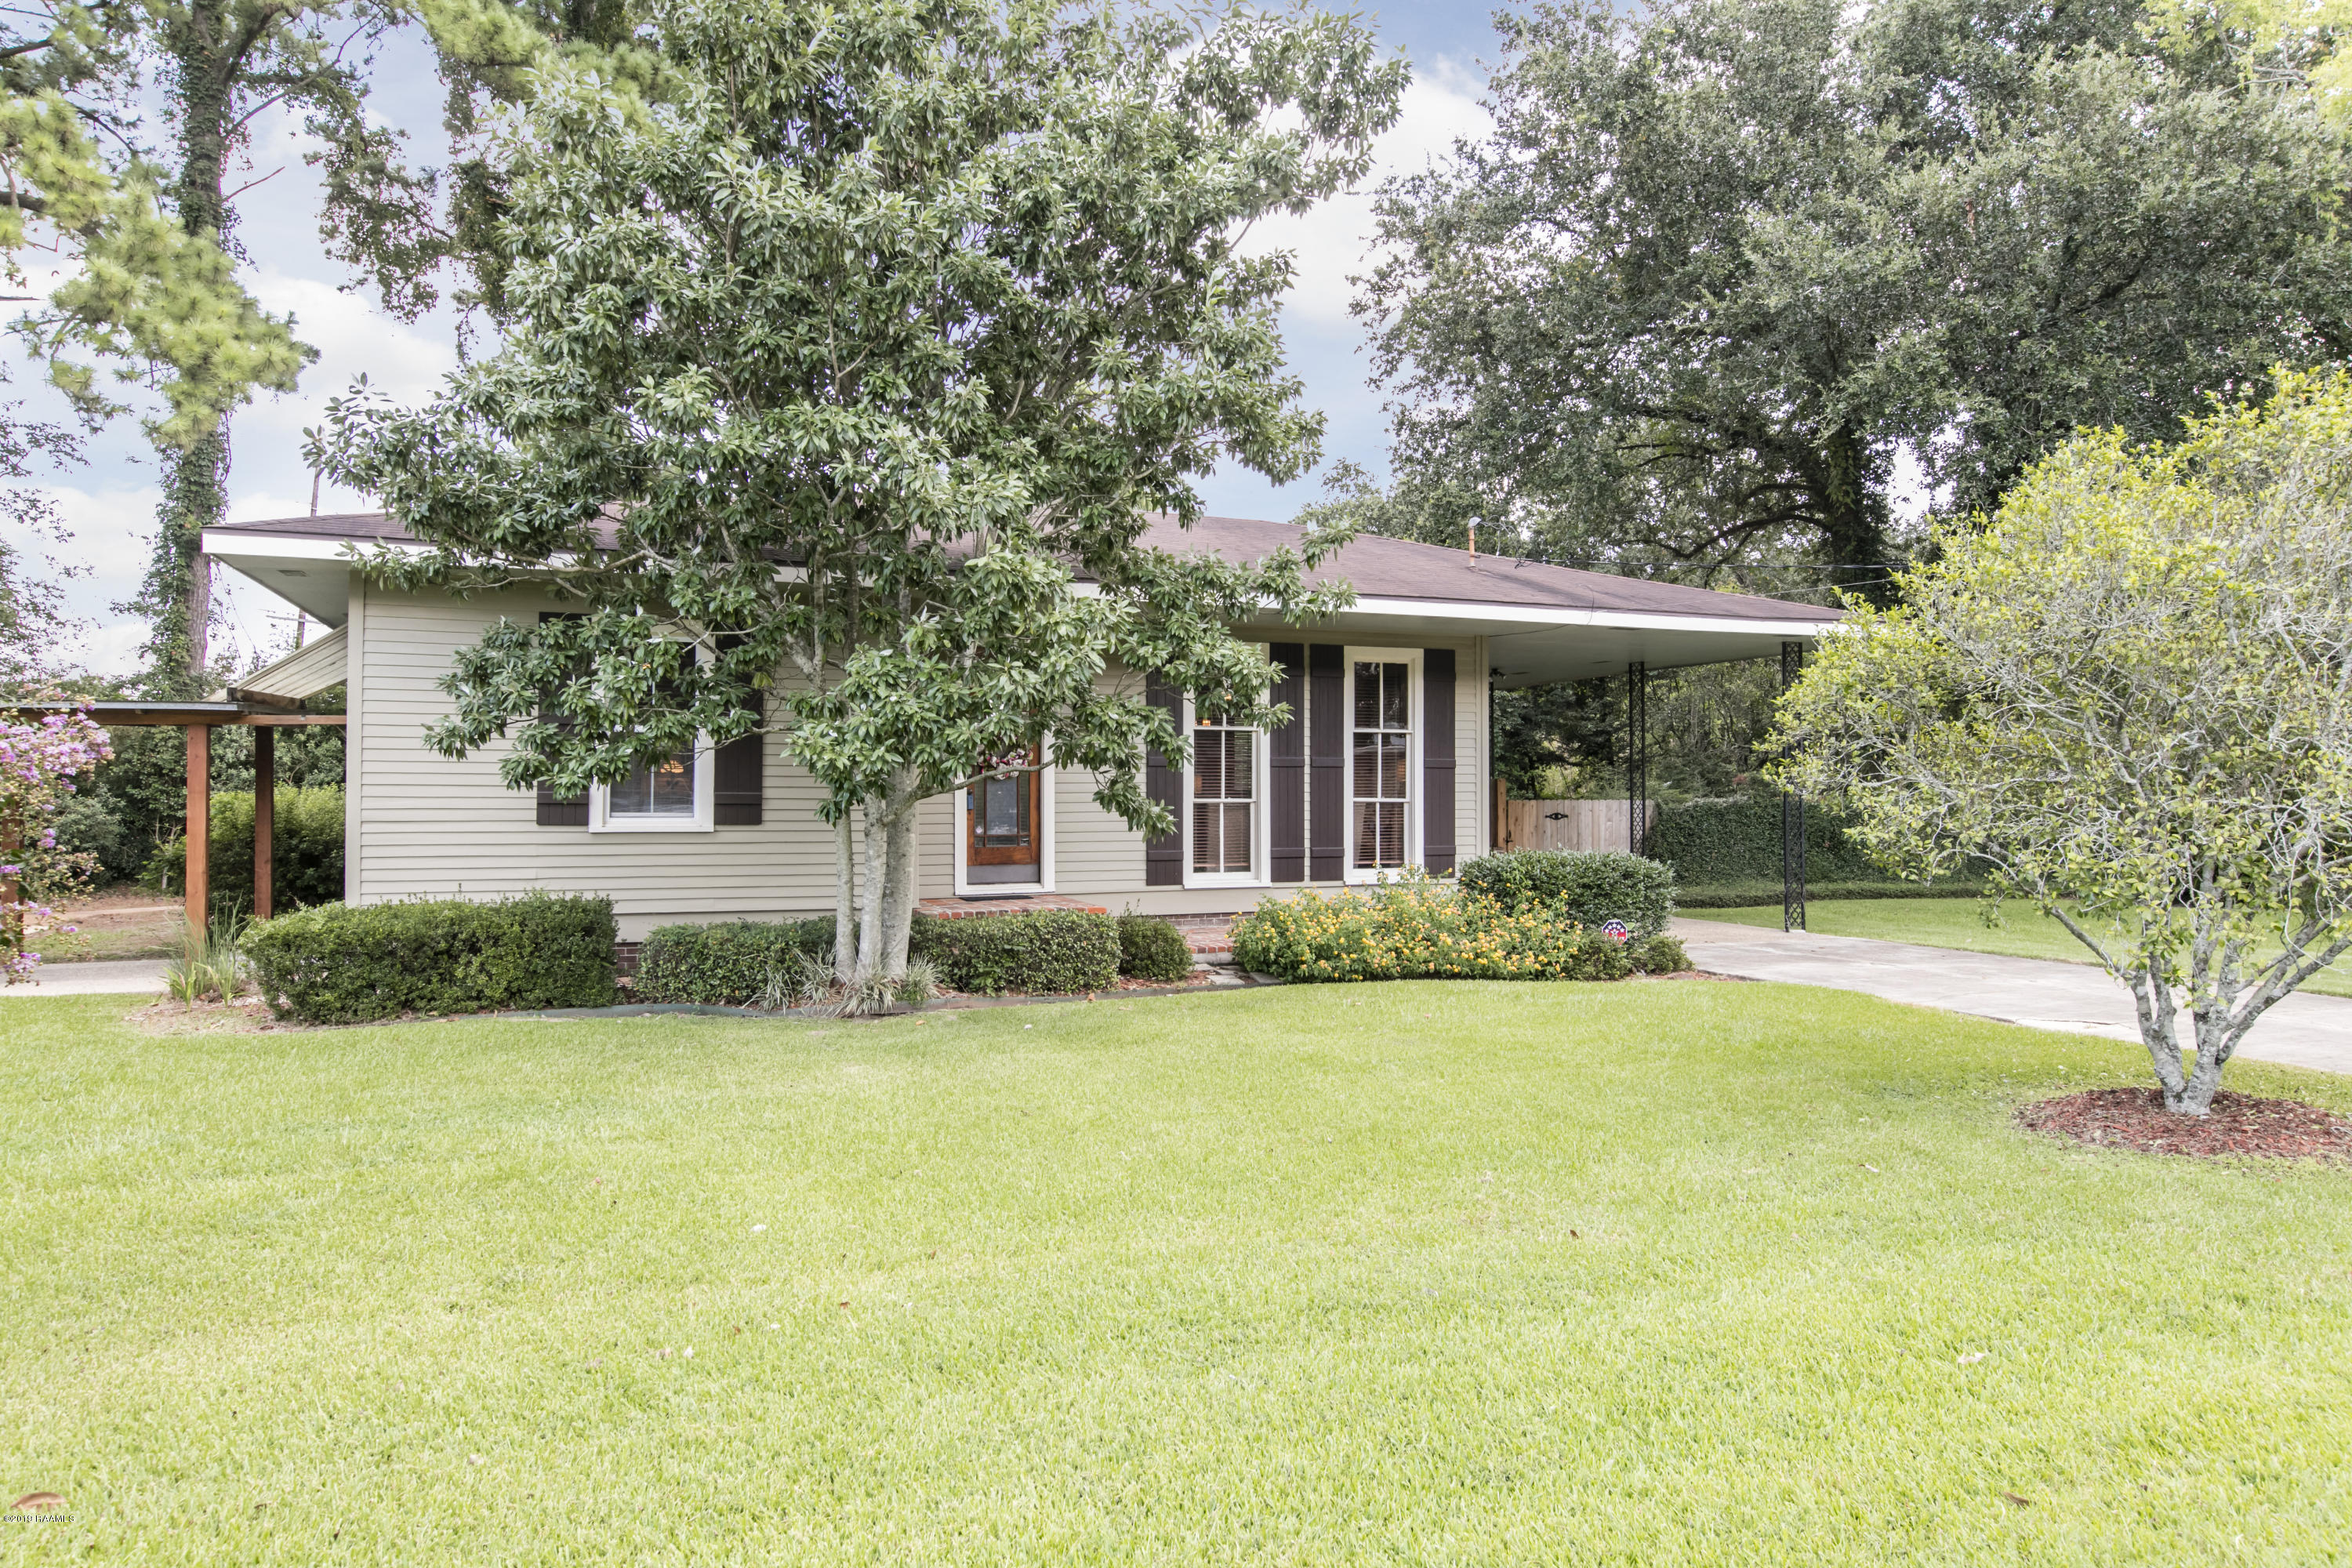 103 Wedgewood Drive, Lafayette, LA 70503 Photo #3